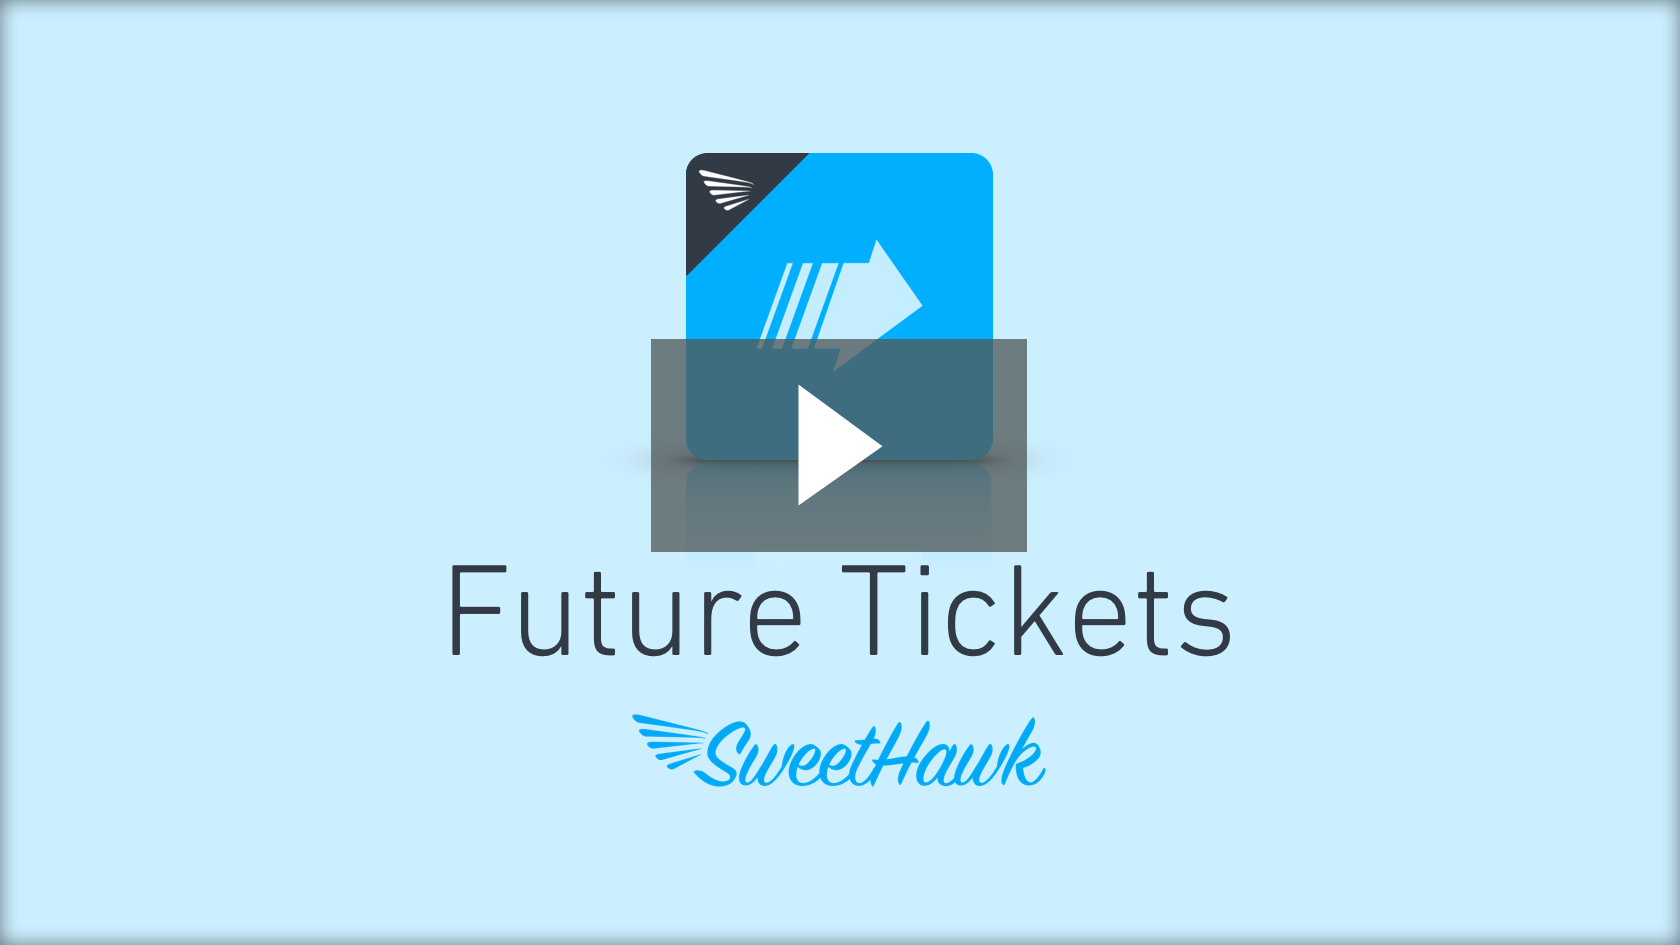 Watch the Future Tickets app video